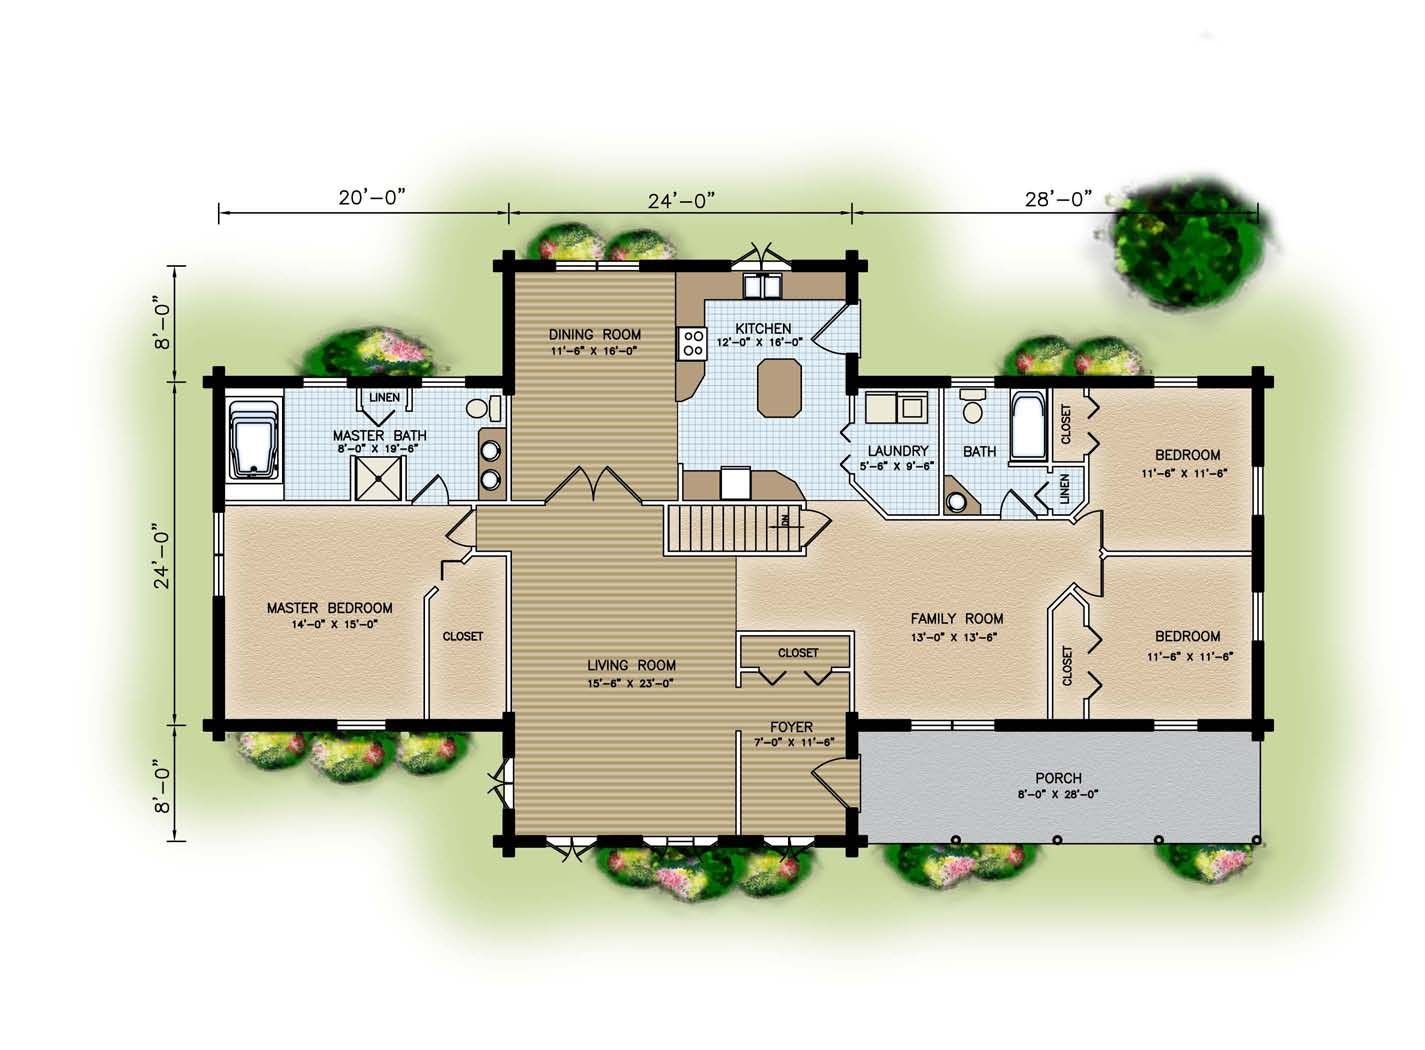 Amazing Creative Design A Floor Plan To Your House: Extravagant Modern Design PLan  Modern Minimalist Design A Floor Plan Spacious Room Ideas With Gr.